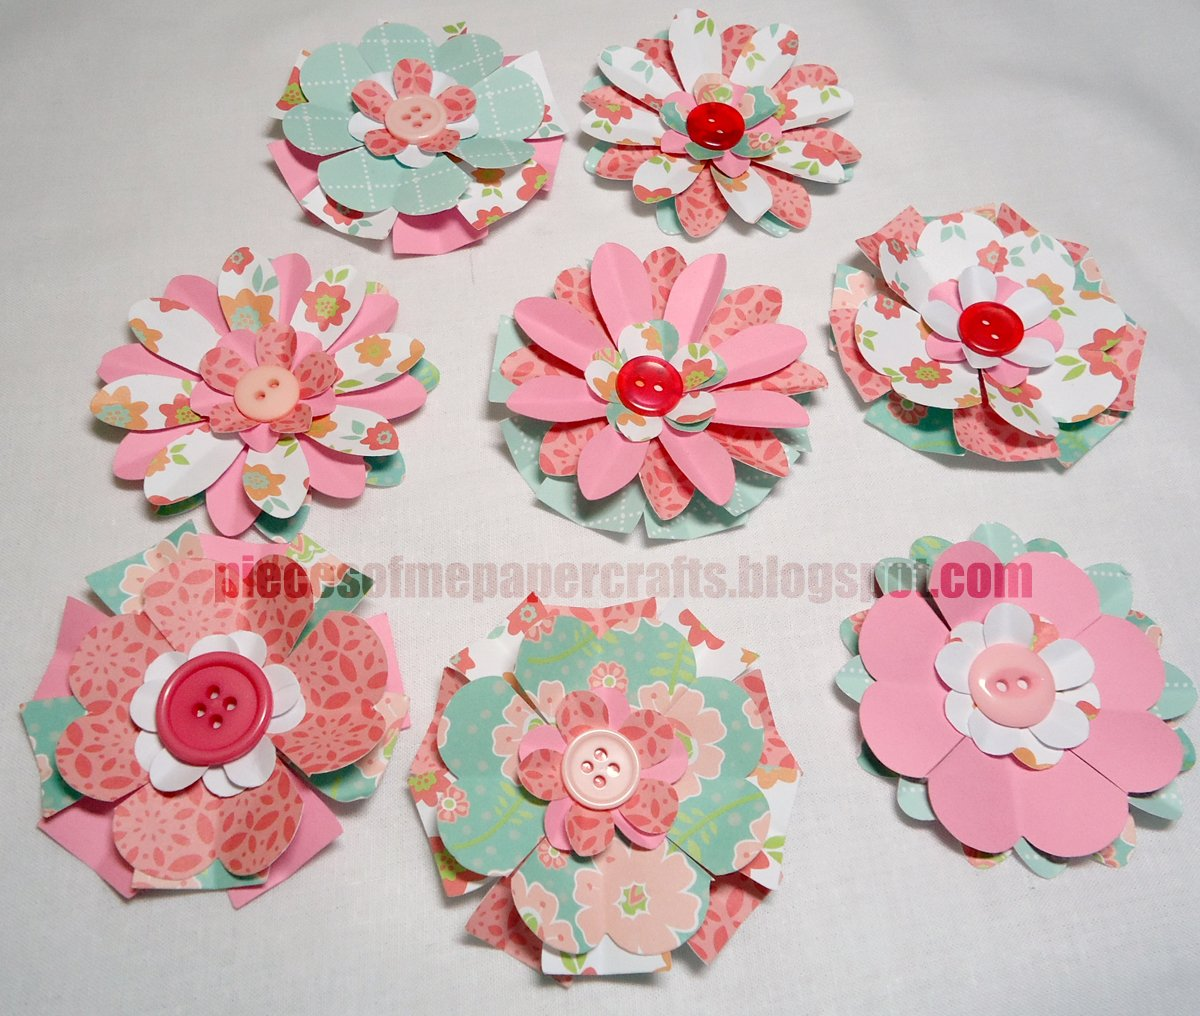 Pieces of Me Scrapbooking & Paper Crafts: Paper Flowers